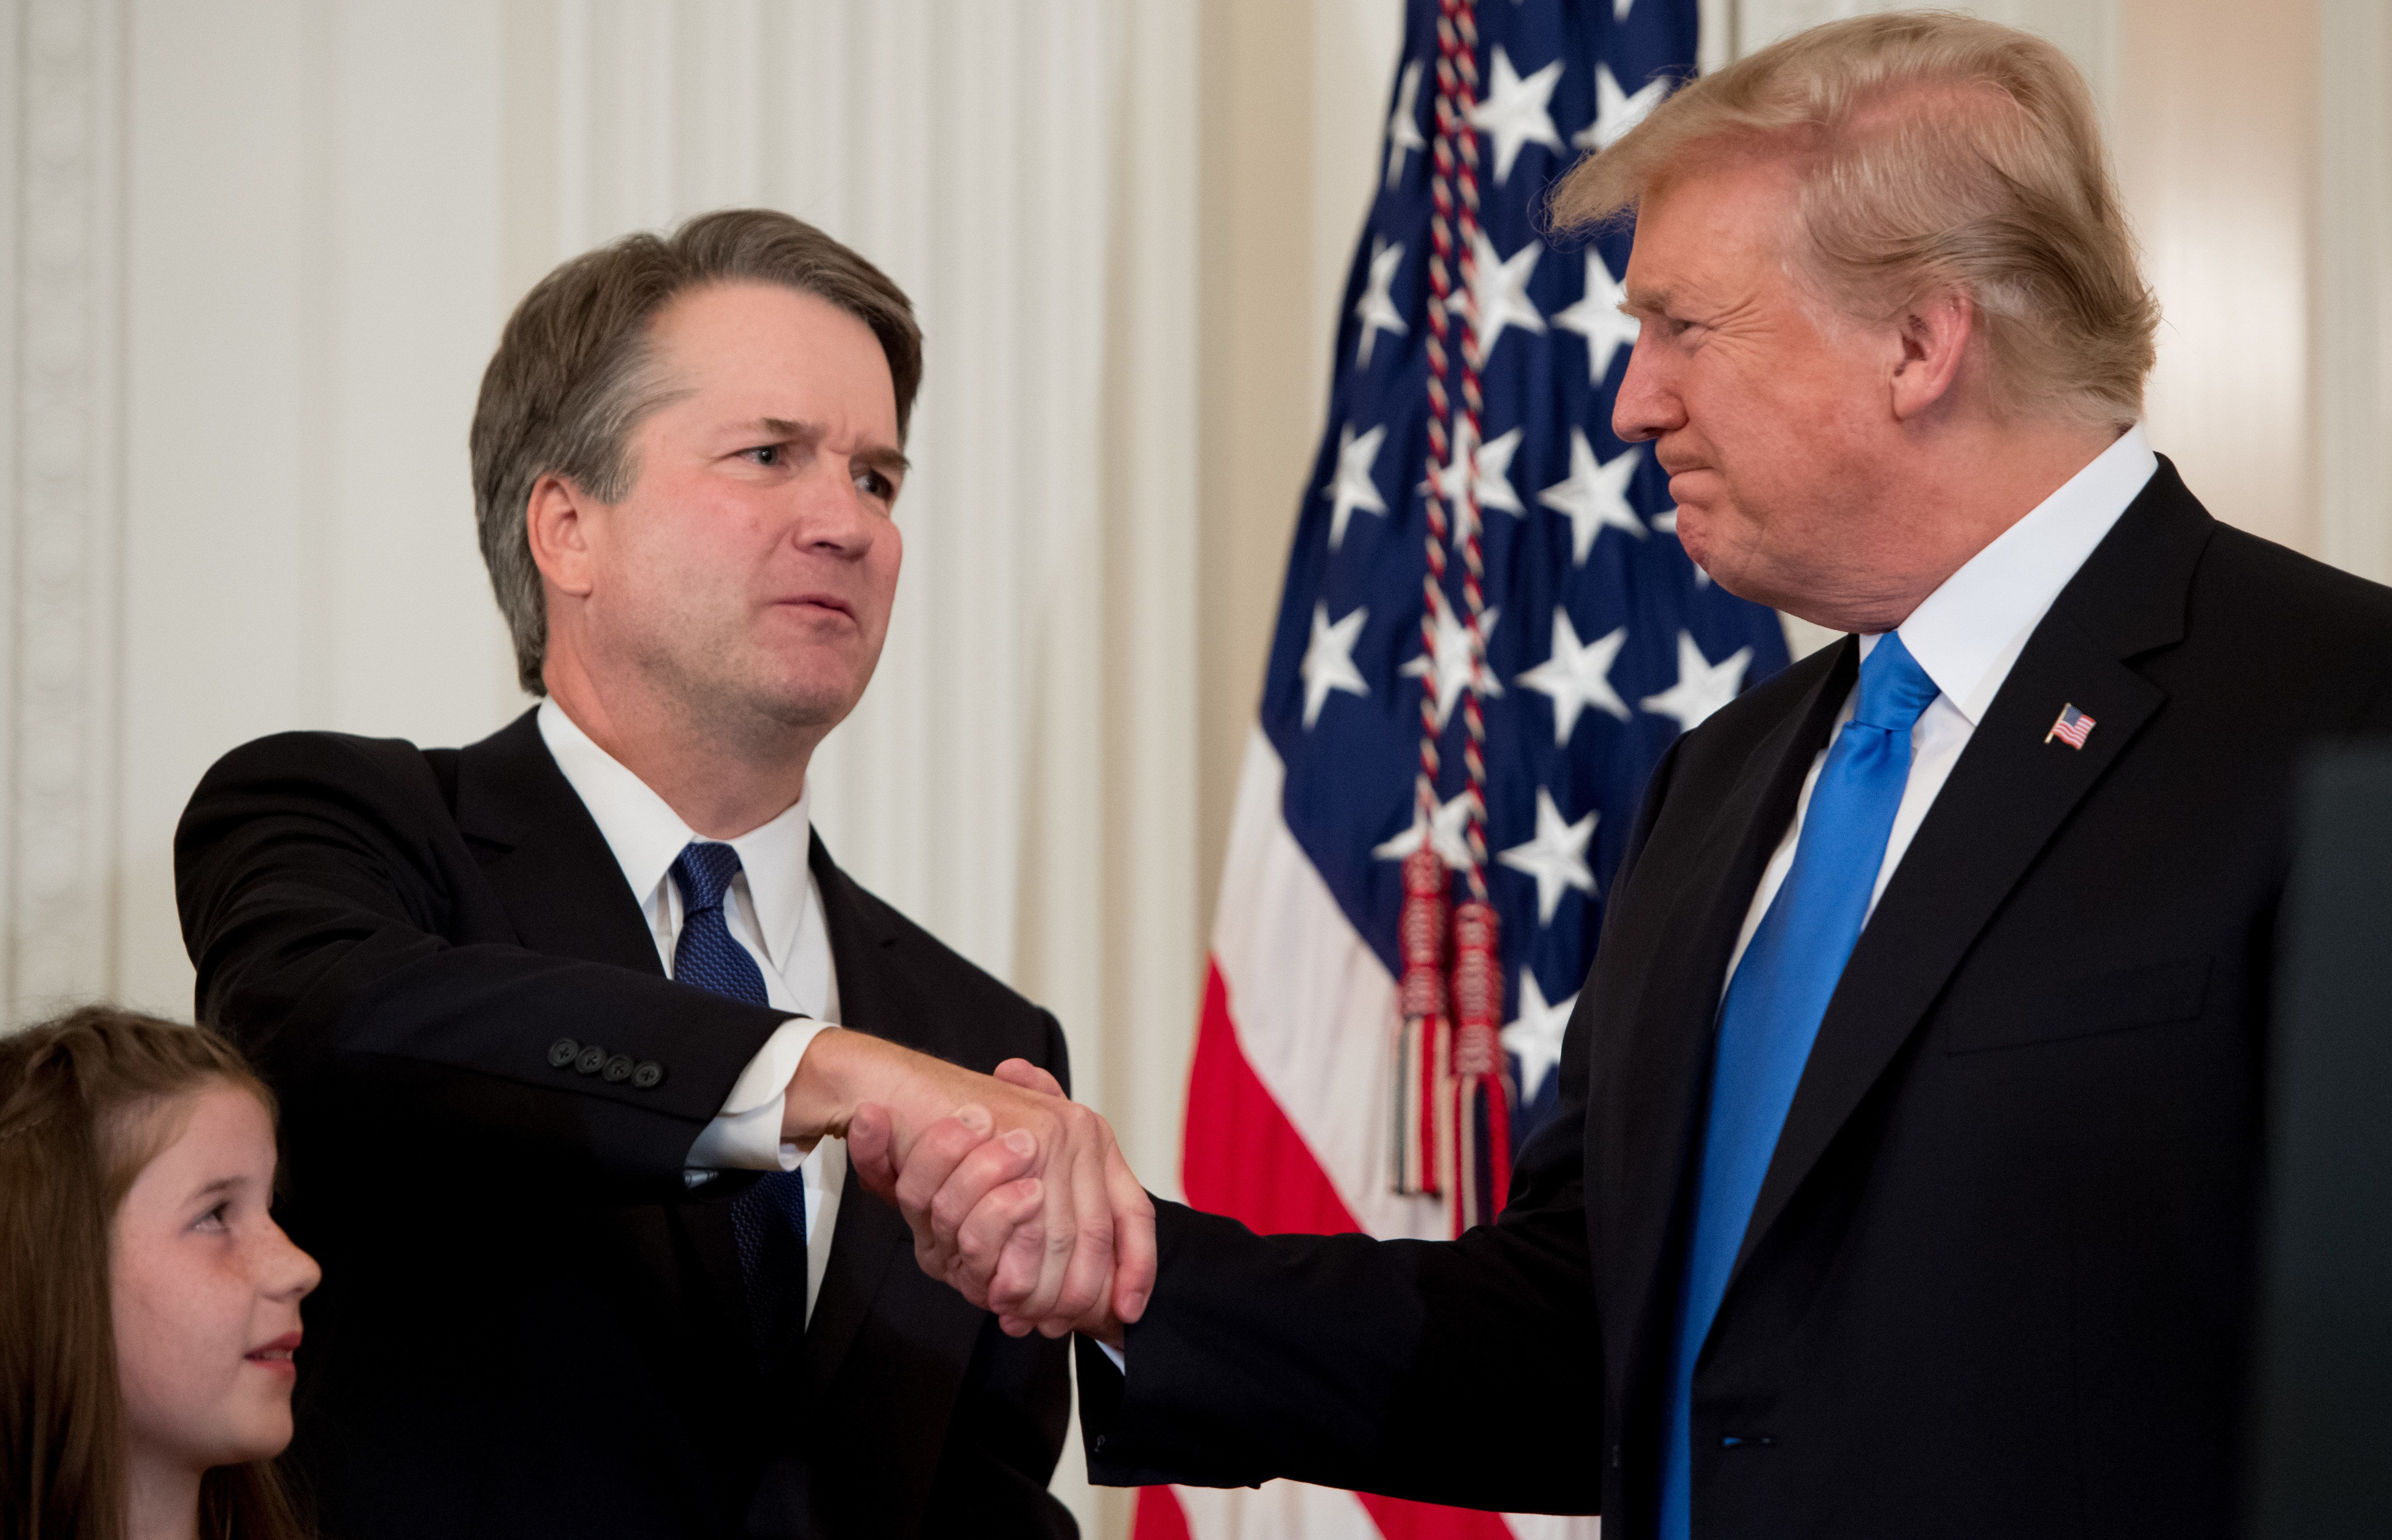 TOPSHOT - US Judge Brett Kavanaugh (L) shakes hands with US President Donald Trump after being nominated to the Supreme Court in the East Room of the White House on July 9, 2018 in Washington, DC. (Photo by SAUL LOEB / AFP)        (Photo credit should read SAUL LOEB/AFP/Getty Images)